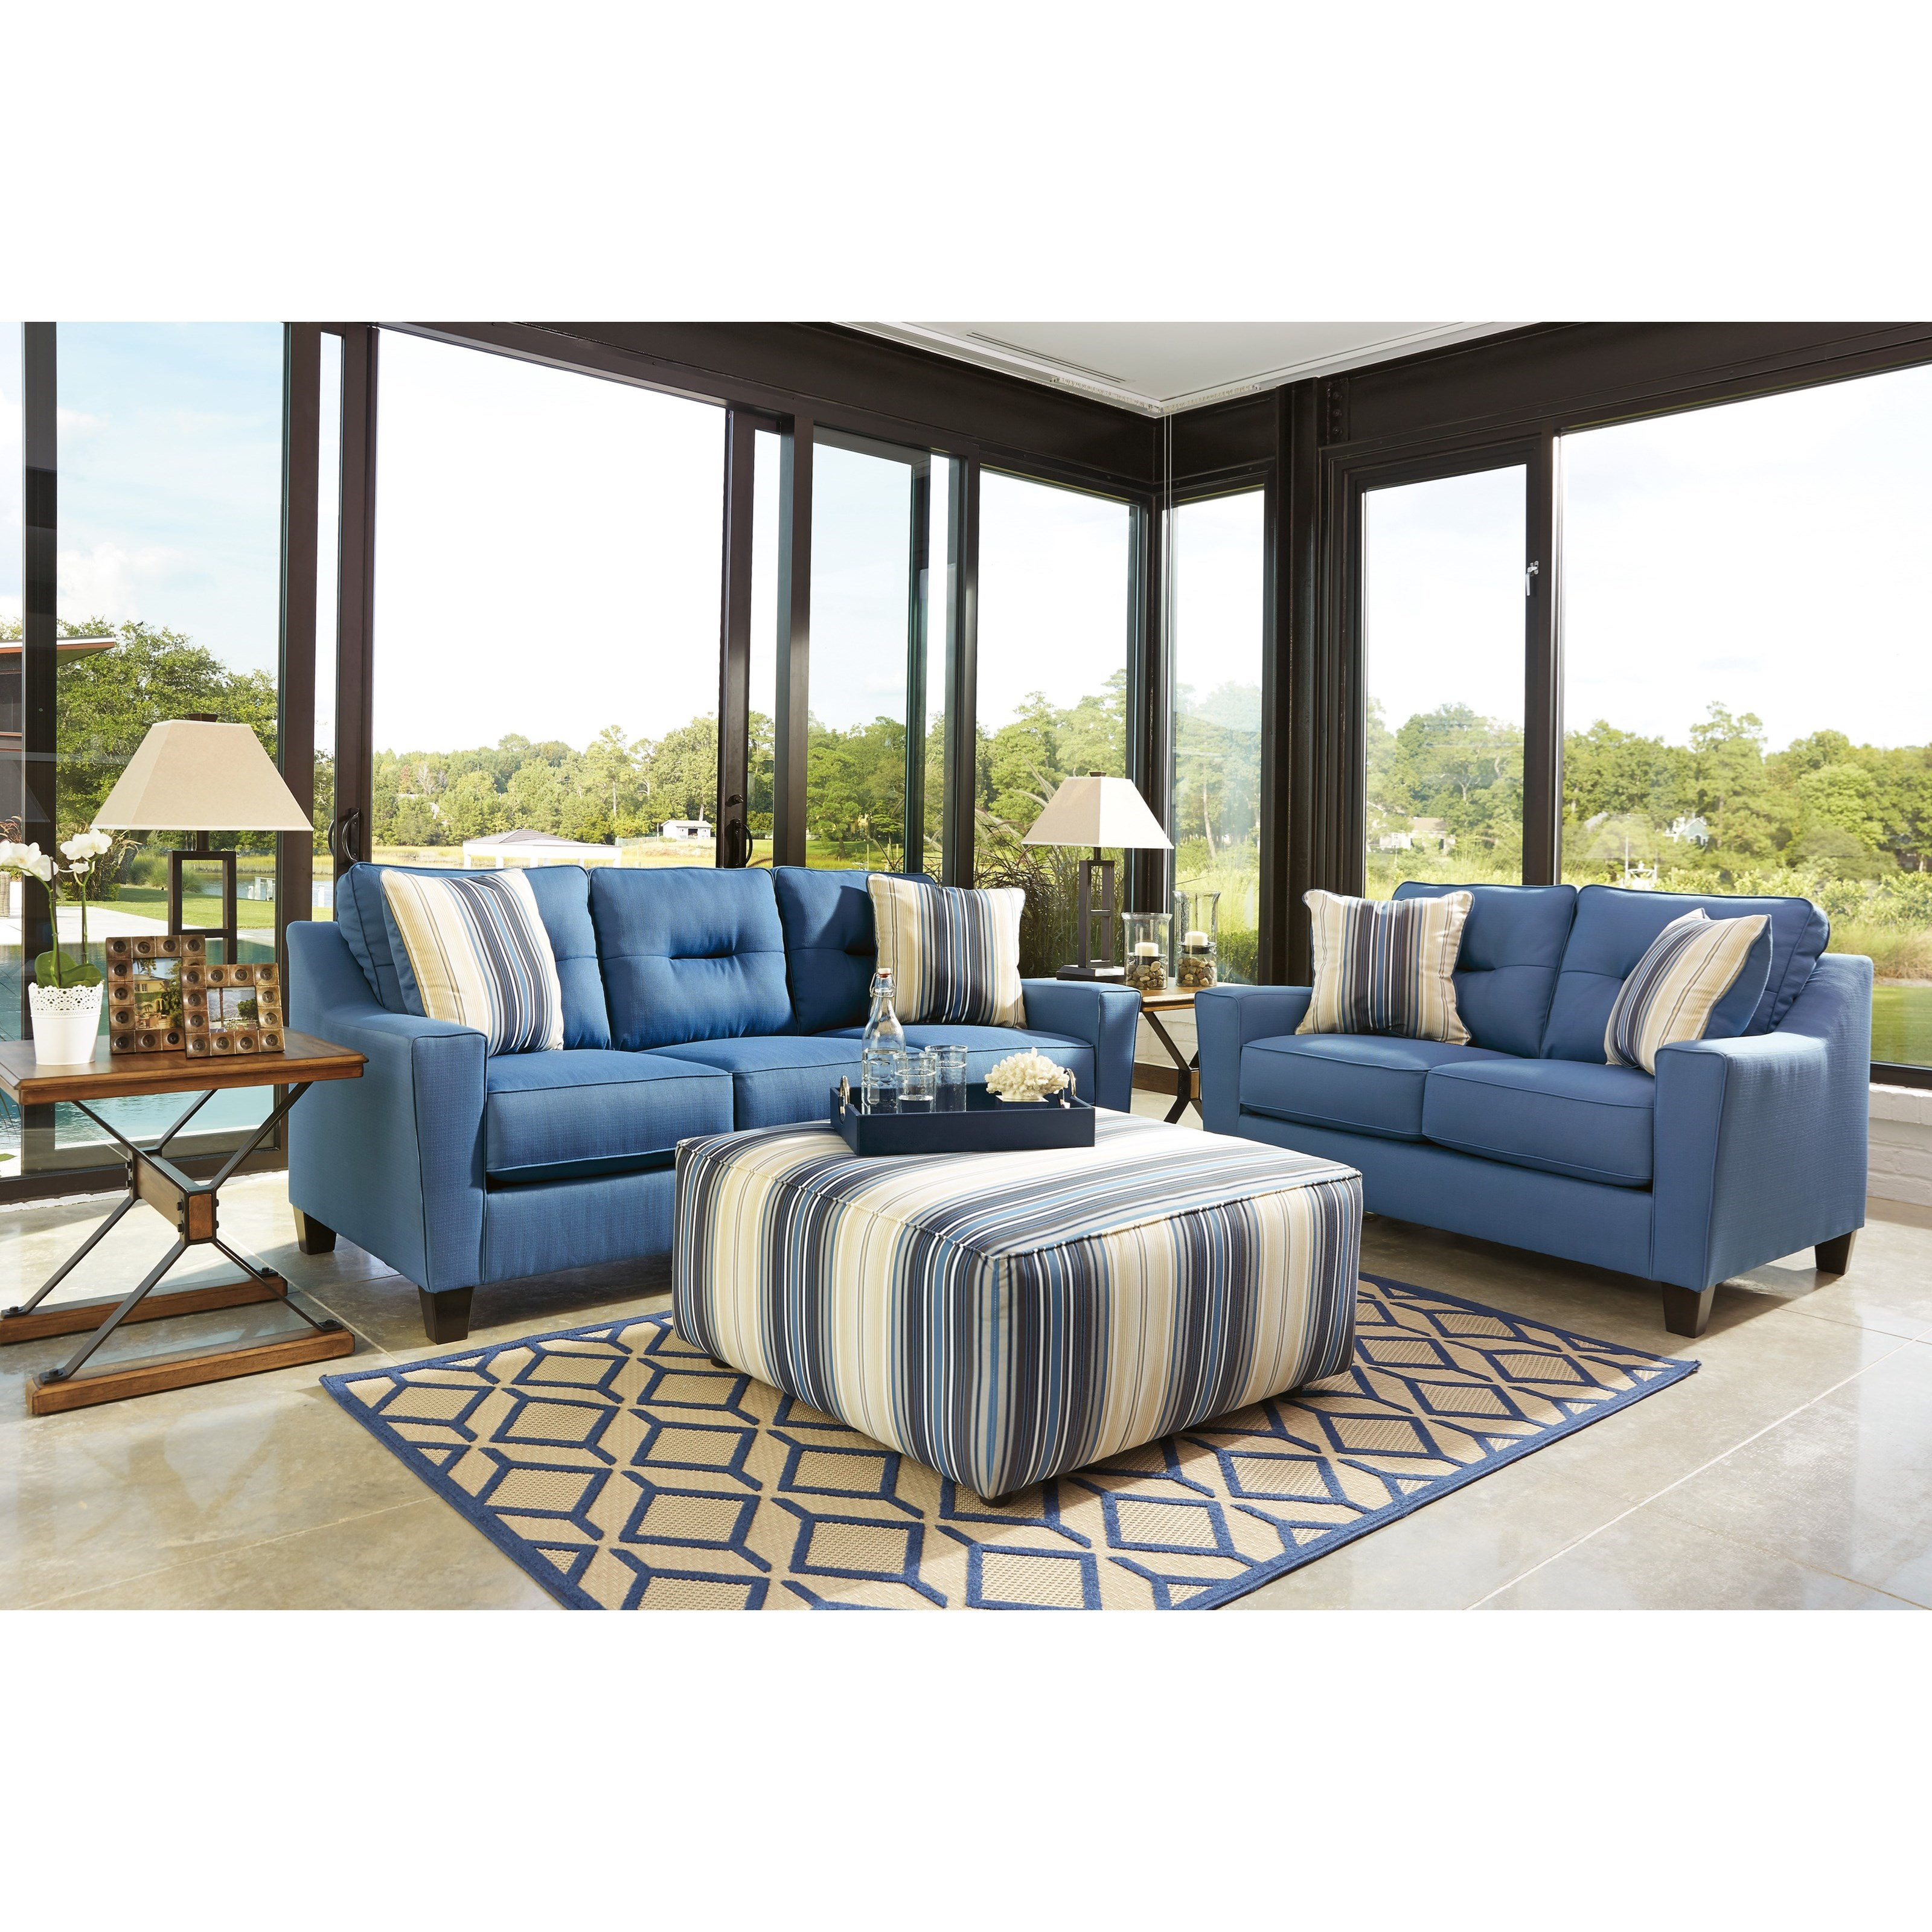 Benchcraft Forsan Nuvella Stationary Living Room Group Vandrie Home Furnishings Stationary